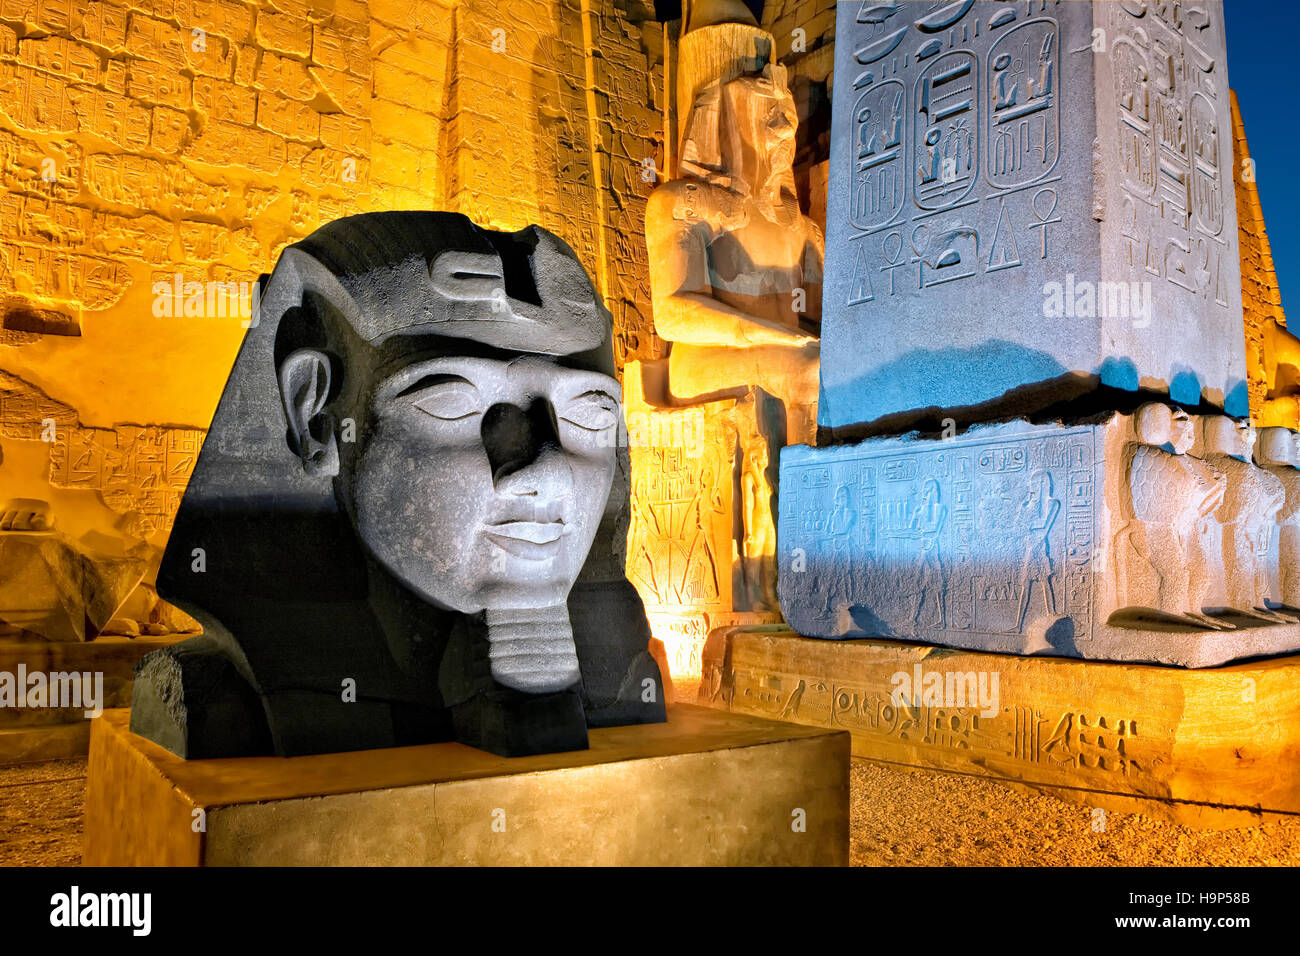 Statue of the pharaoh Ramses II in Luxor Temple, Egypt - Stock Image